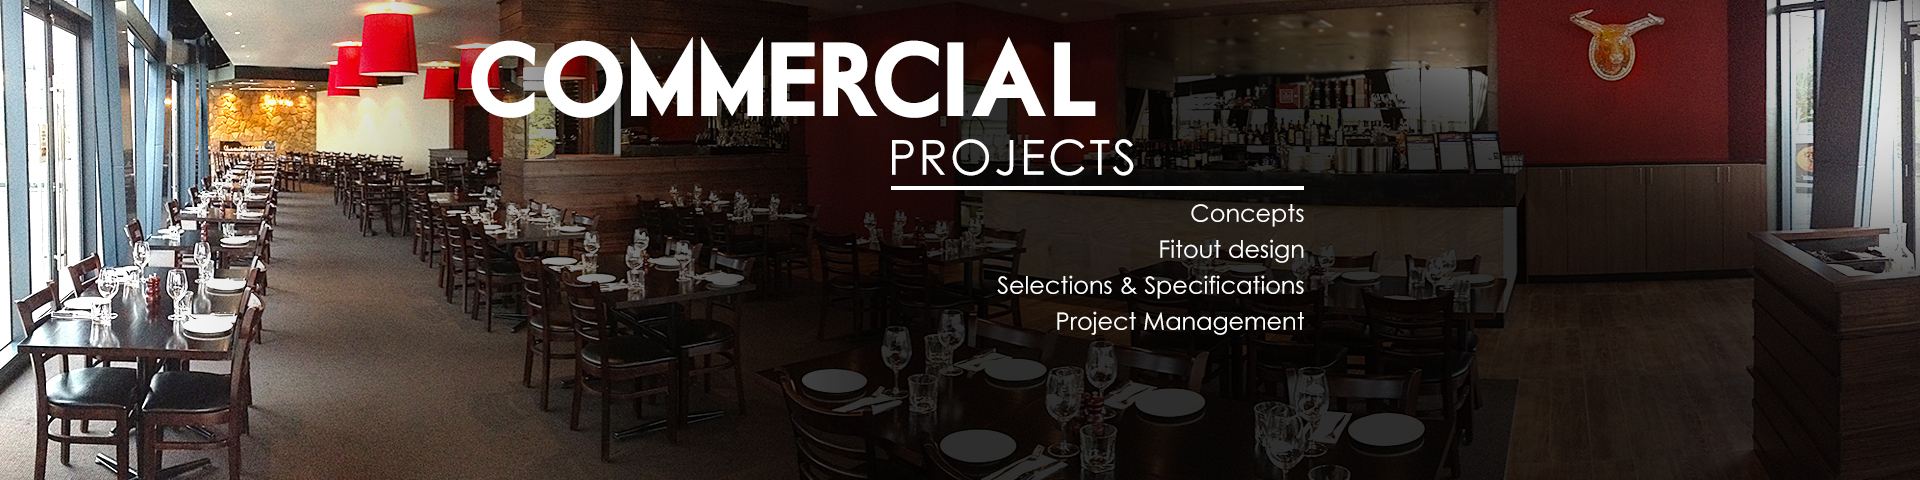 Commercial projects banner